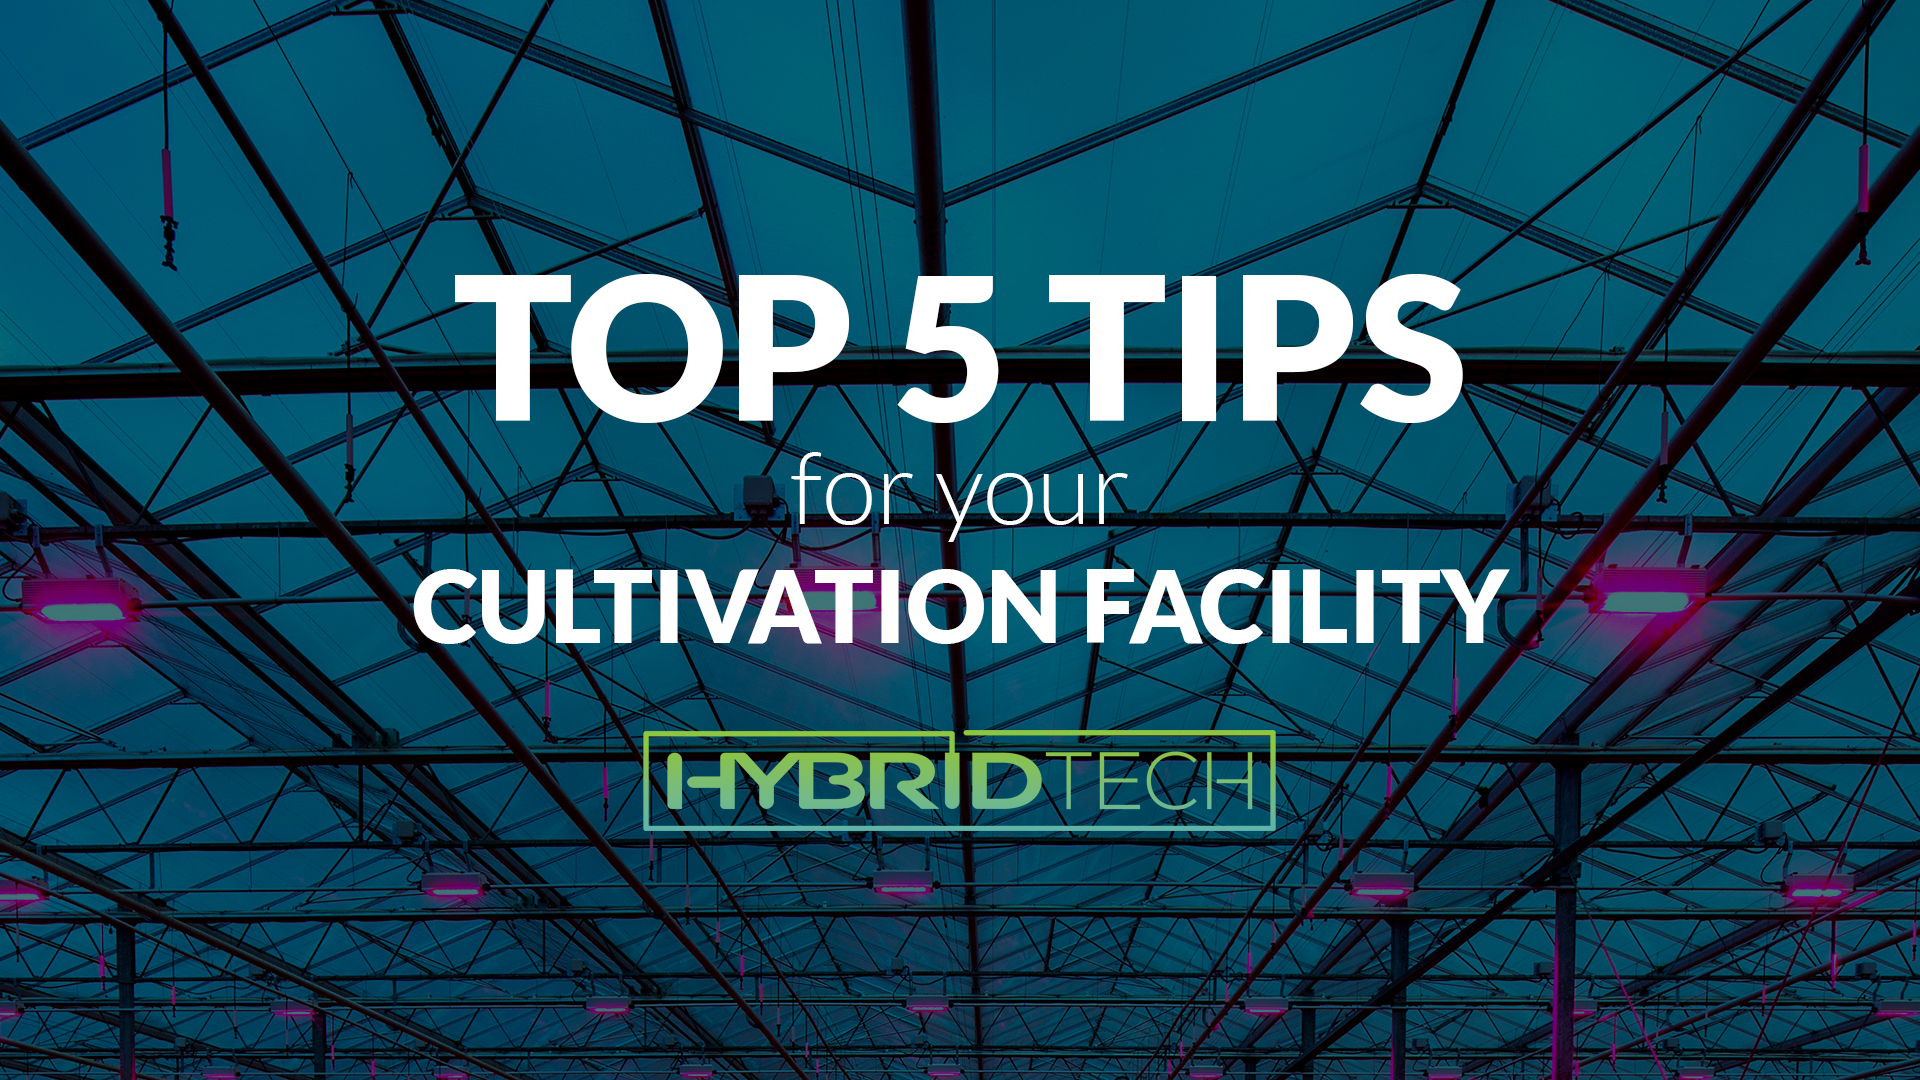 Top 5 Tips for your Cultivation Facility